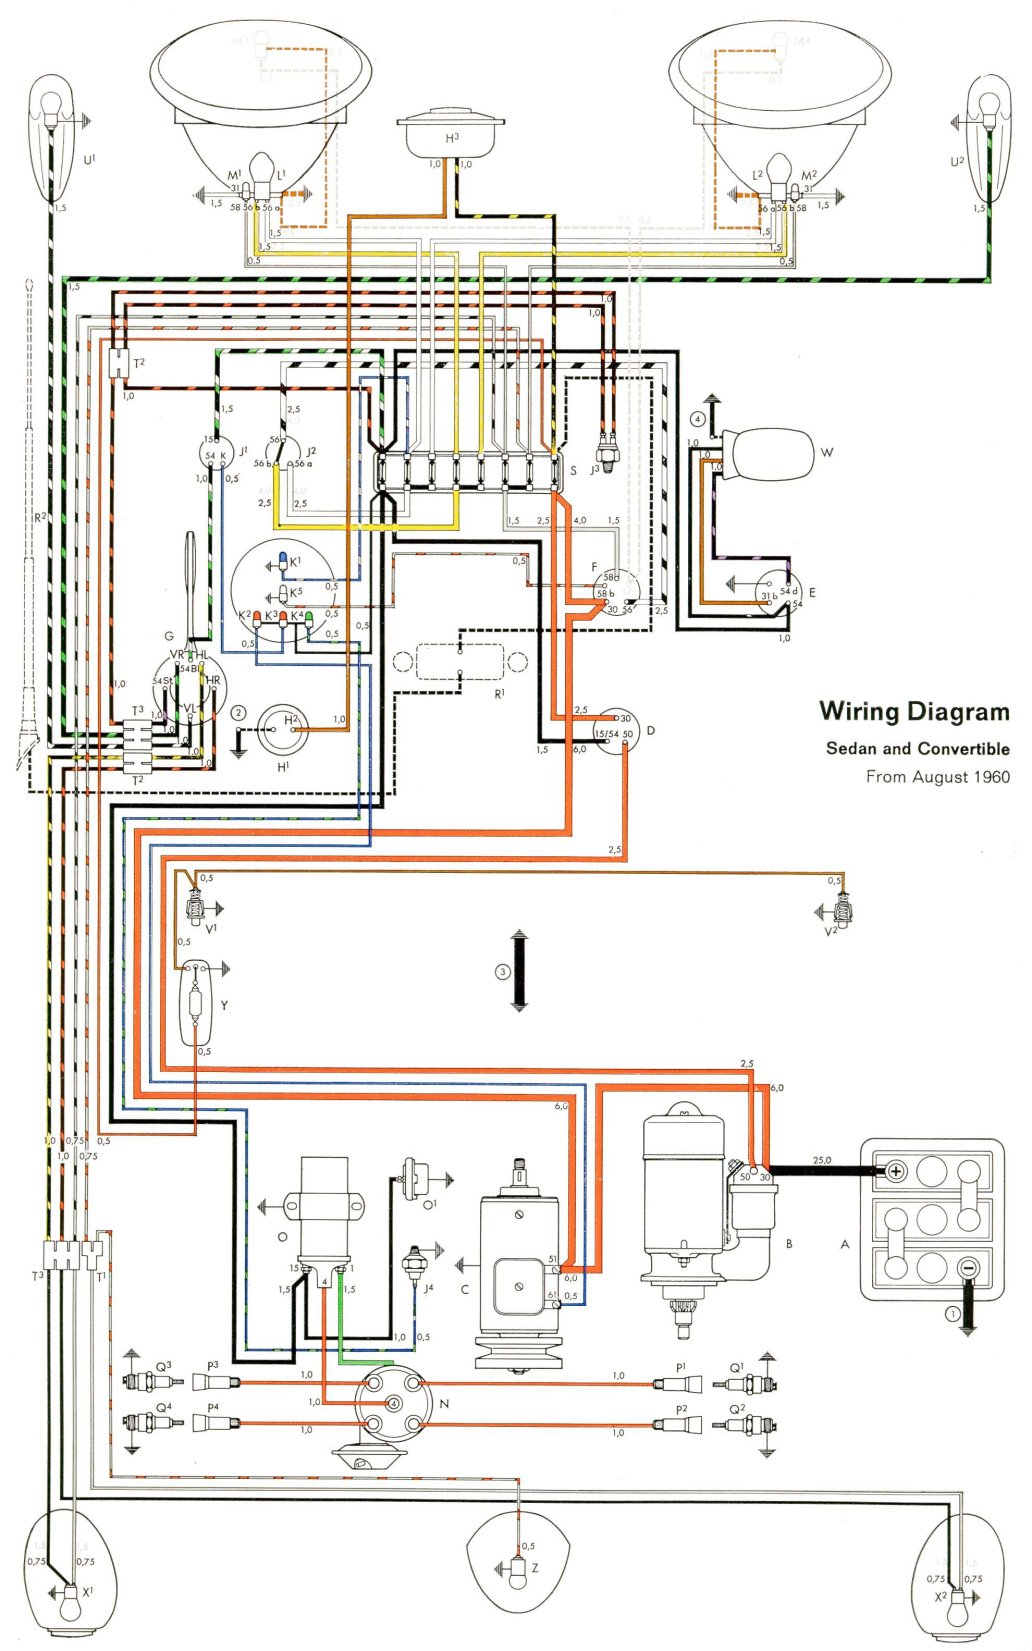 bug_61 1961 beetle wiring diagram thegoldenbug com 1973 vw super beetle wiring harness at creativeand.co